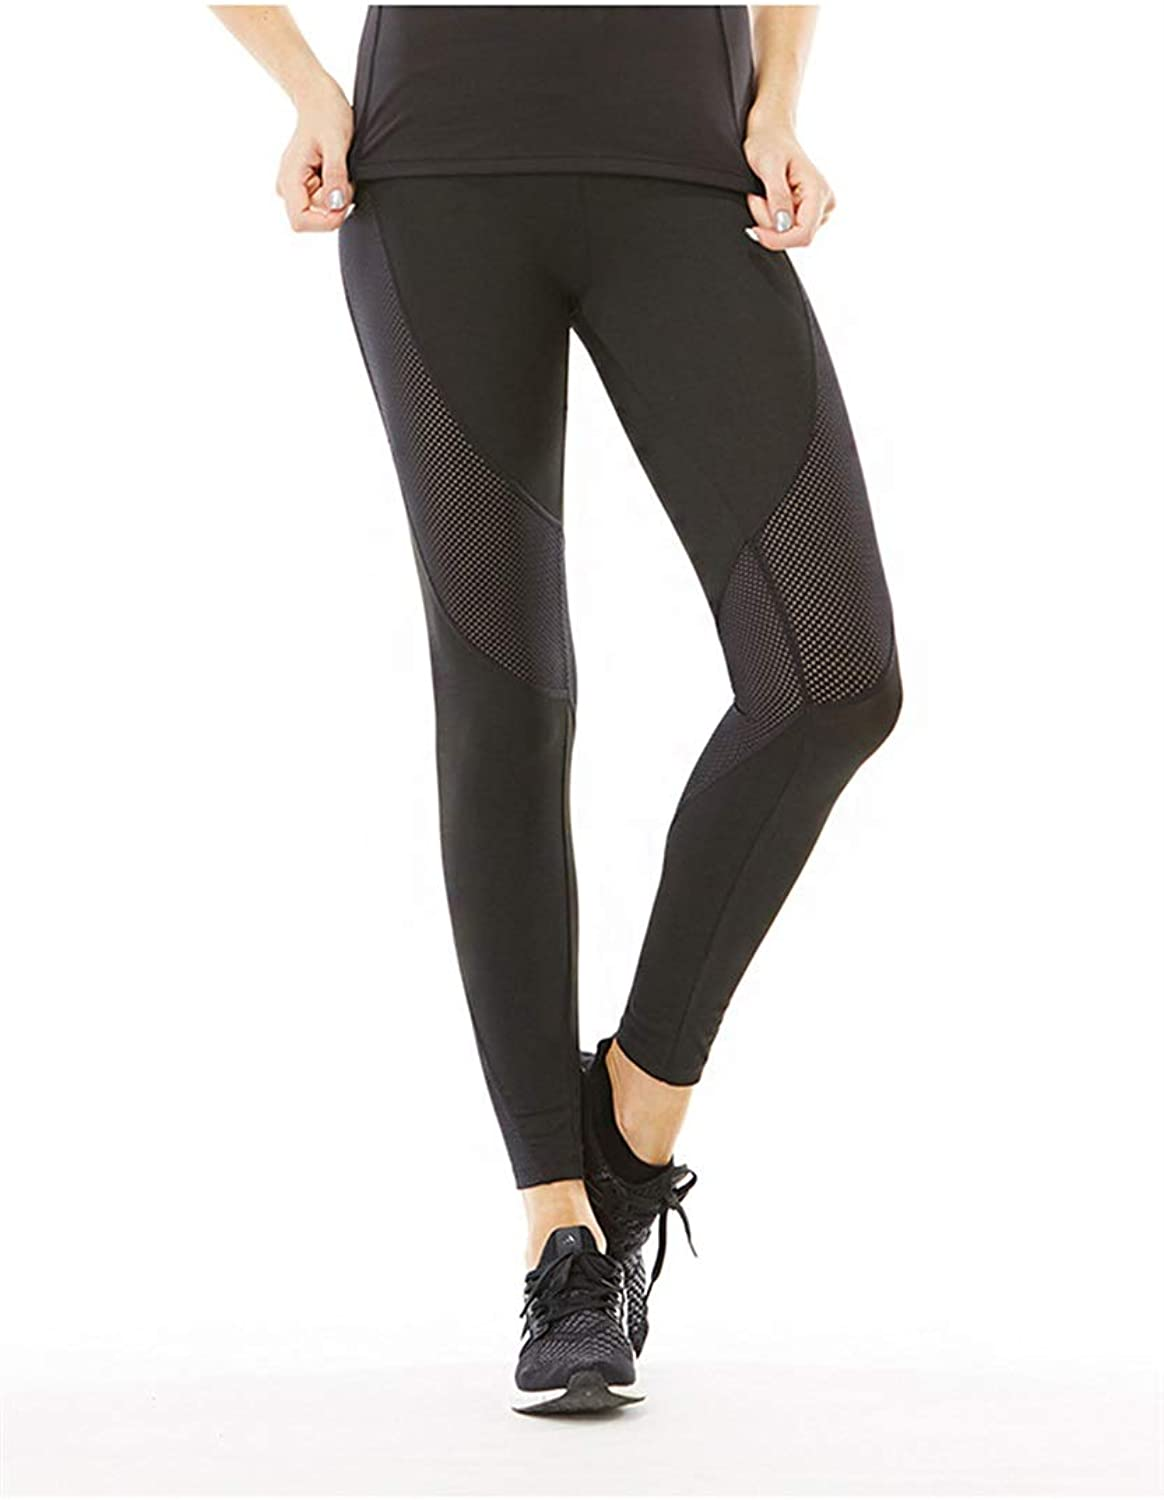 SCRT Yoga Pants Sports and Fitness Trousers QuickDrying & Breathable Mesh Splicing Stretch Women's Tights (Size   XL)